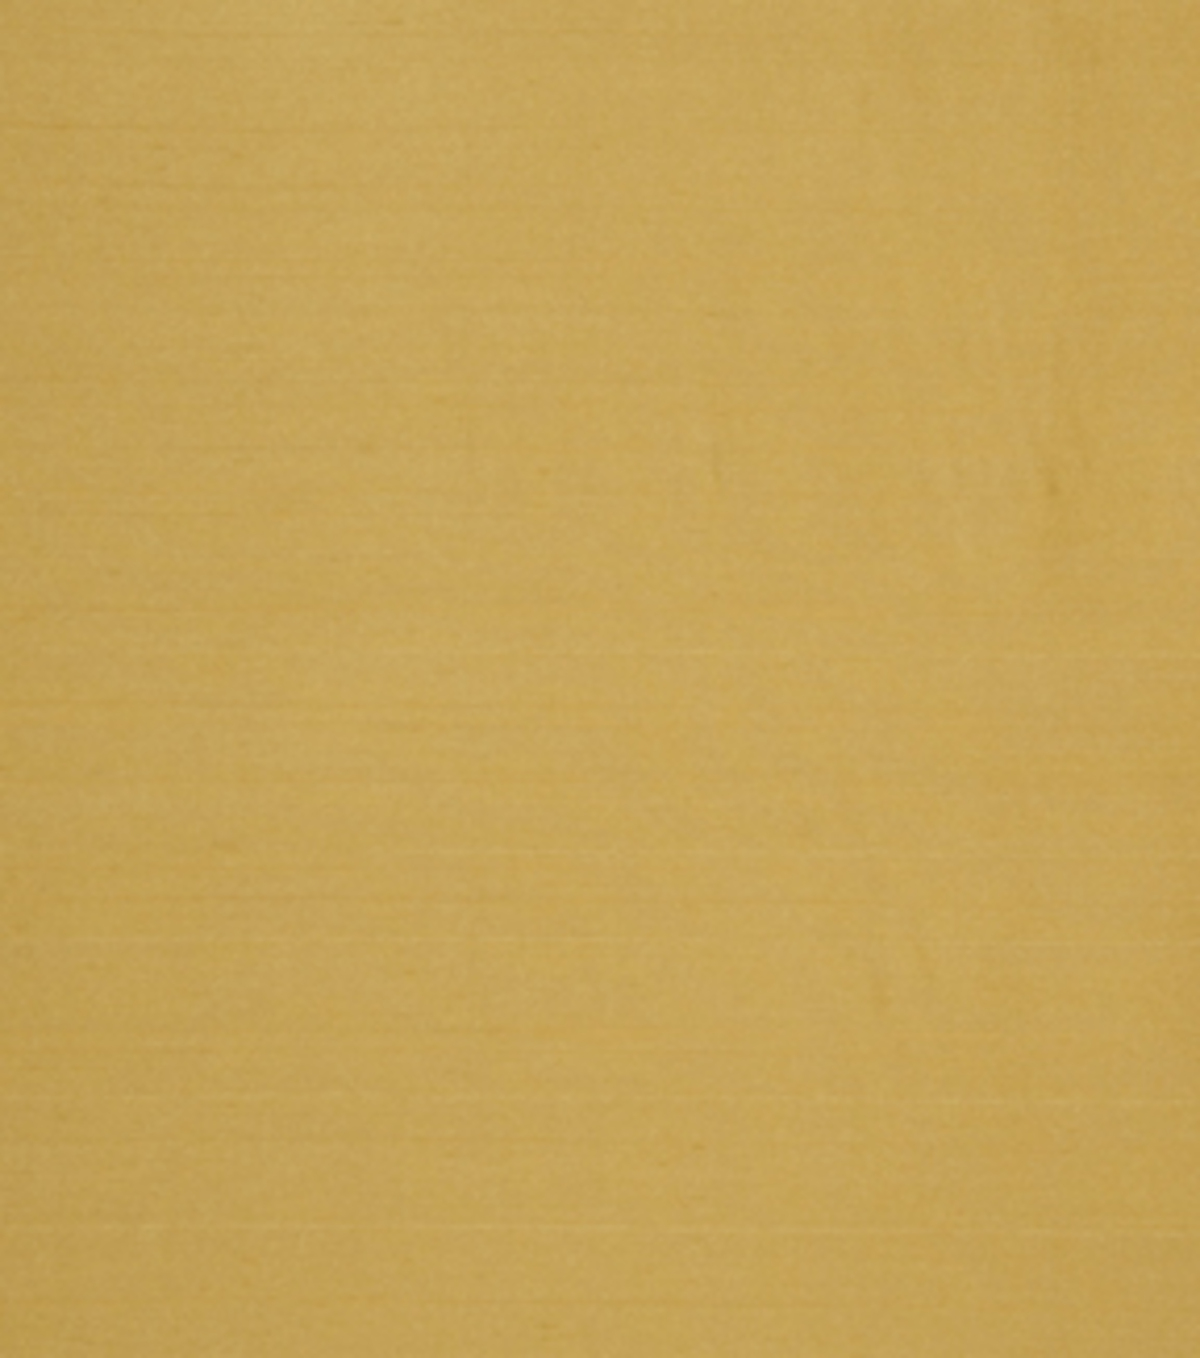 Home Decor 8\u0022x8\u0022 Fabric Swatch-Signature Series Bravo Nugget